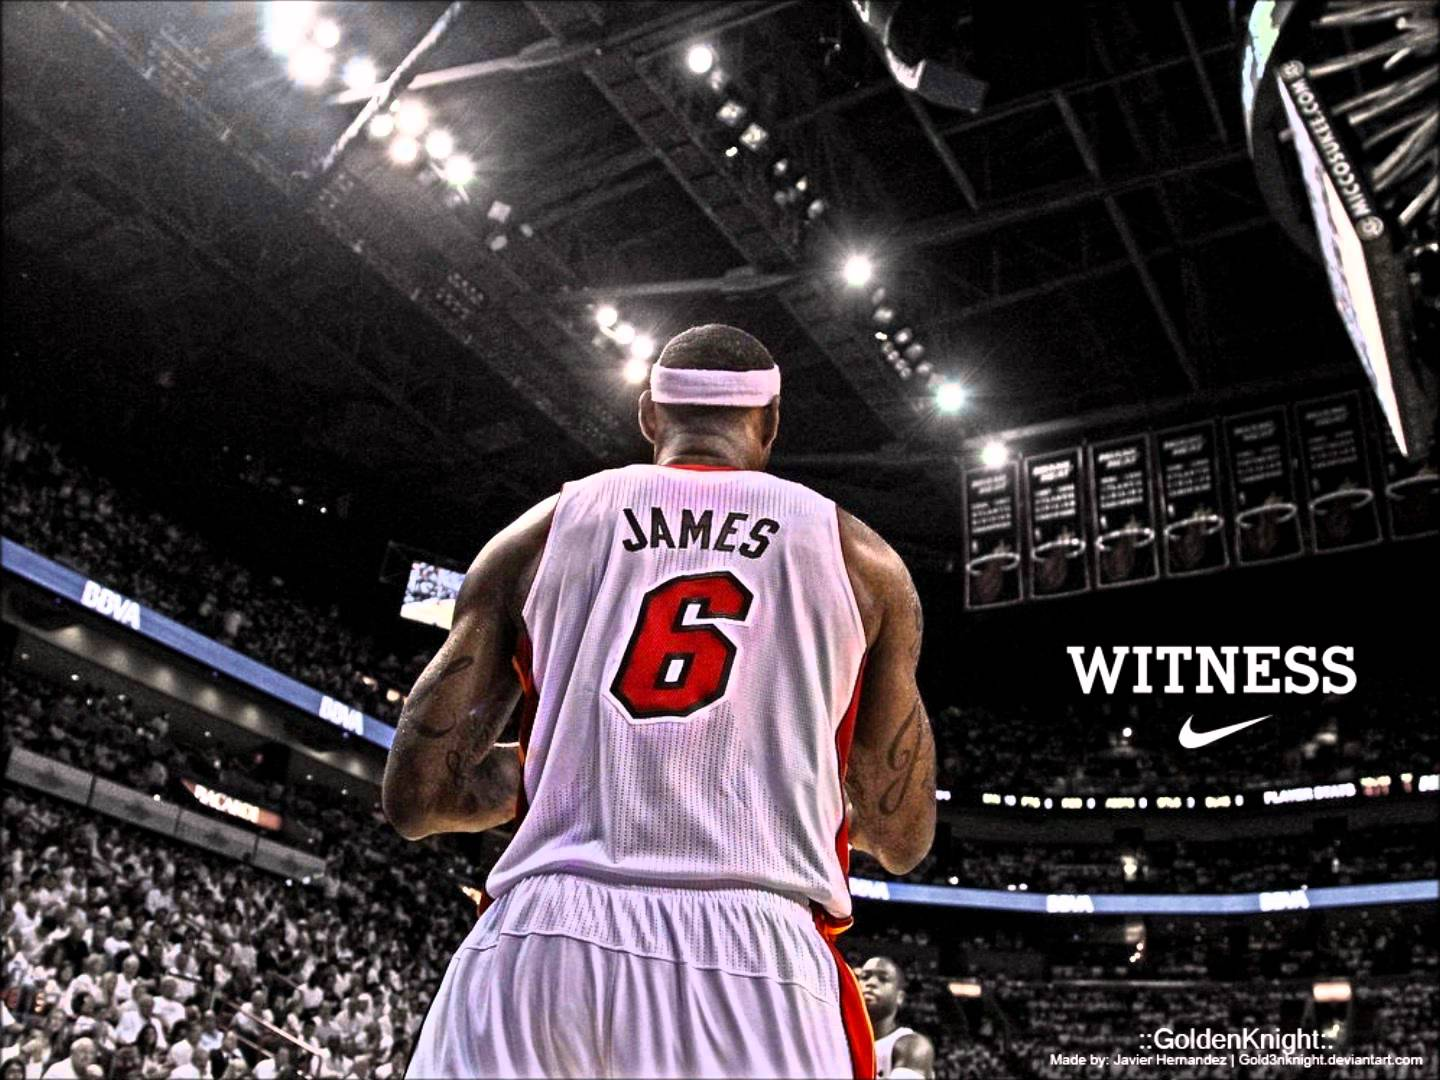 Viewing Gallery For   Lebron James Witness 1440x1080